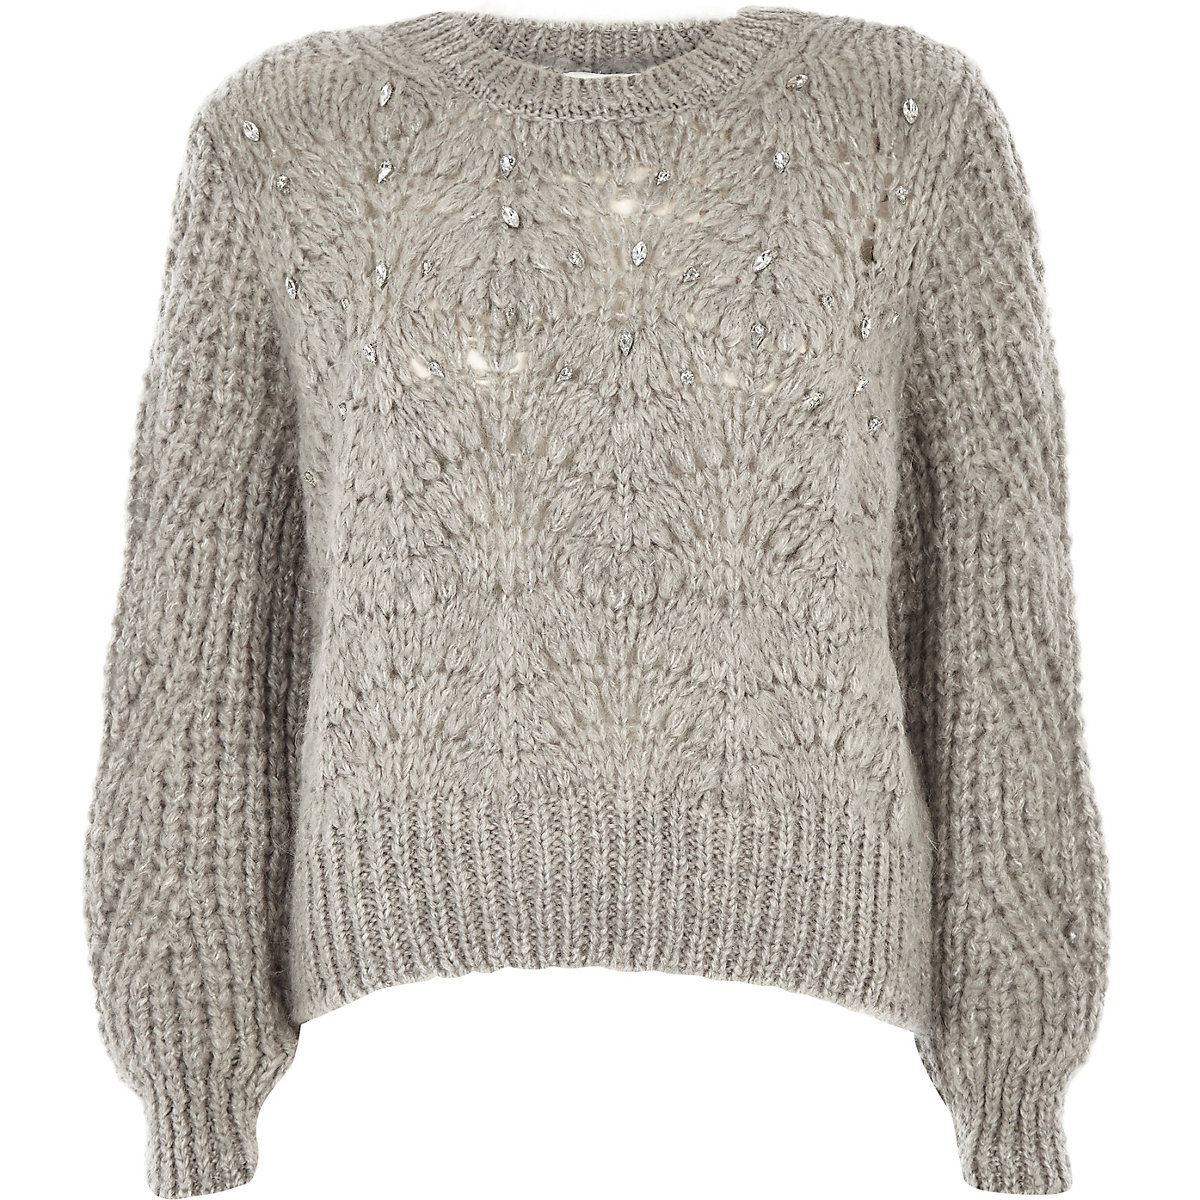 Petite grey knit crew neck embellished sweater